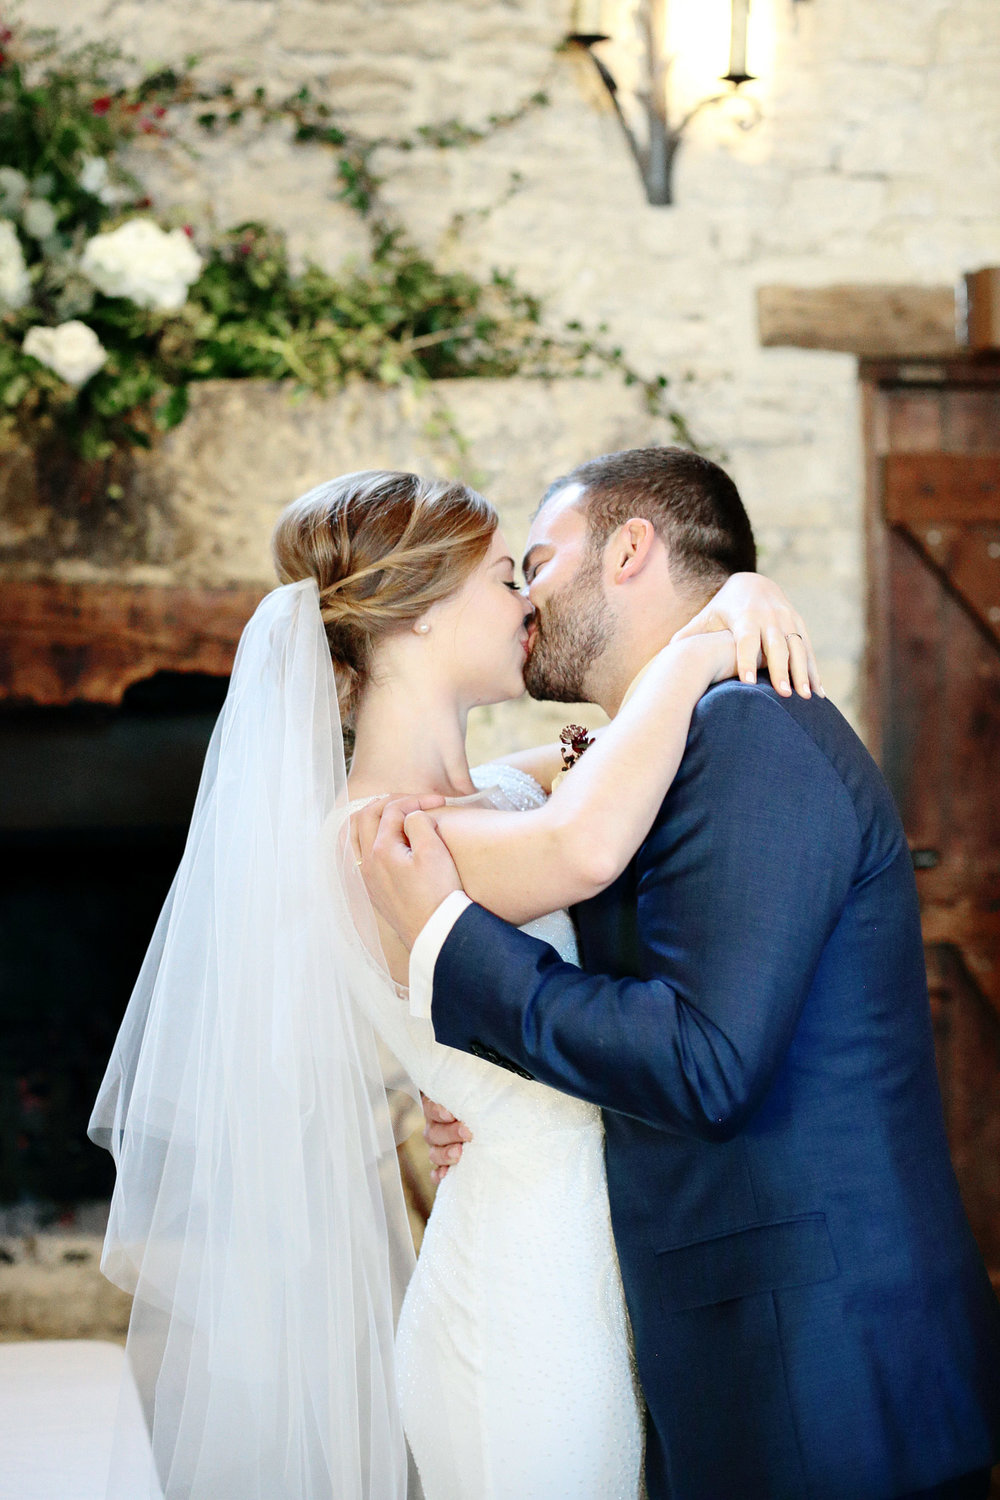 Cripps barn wedding first kiss photo